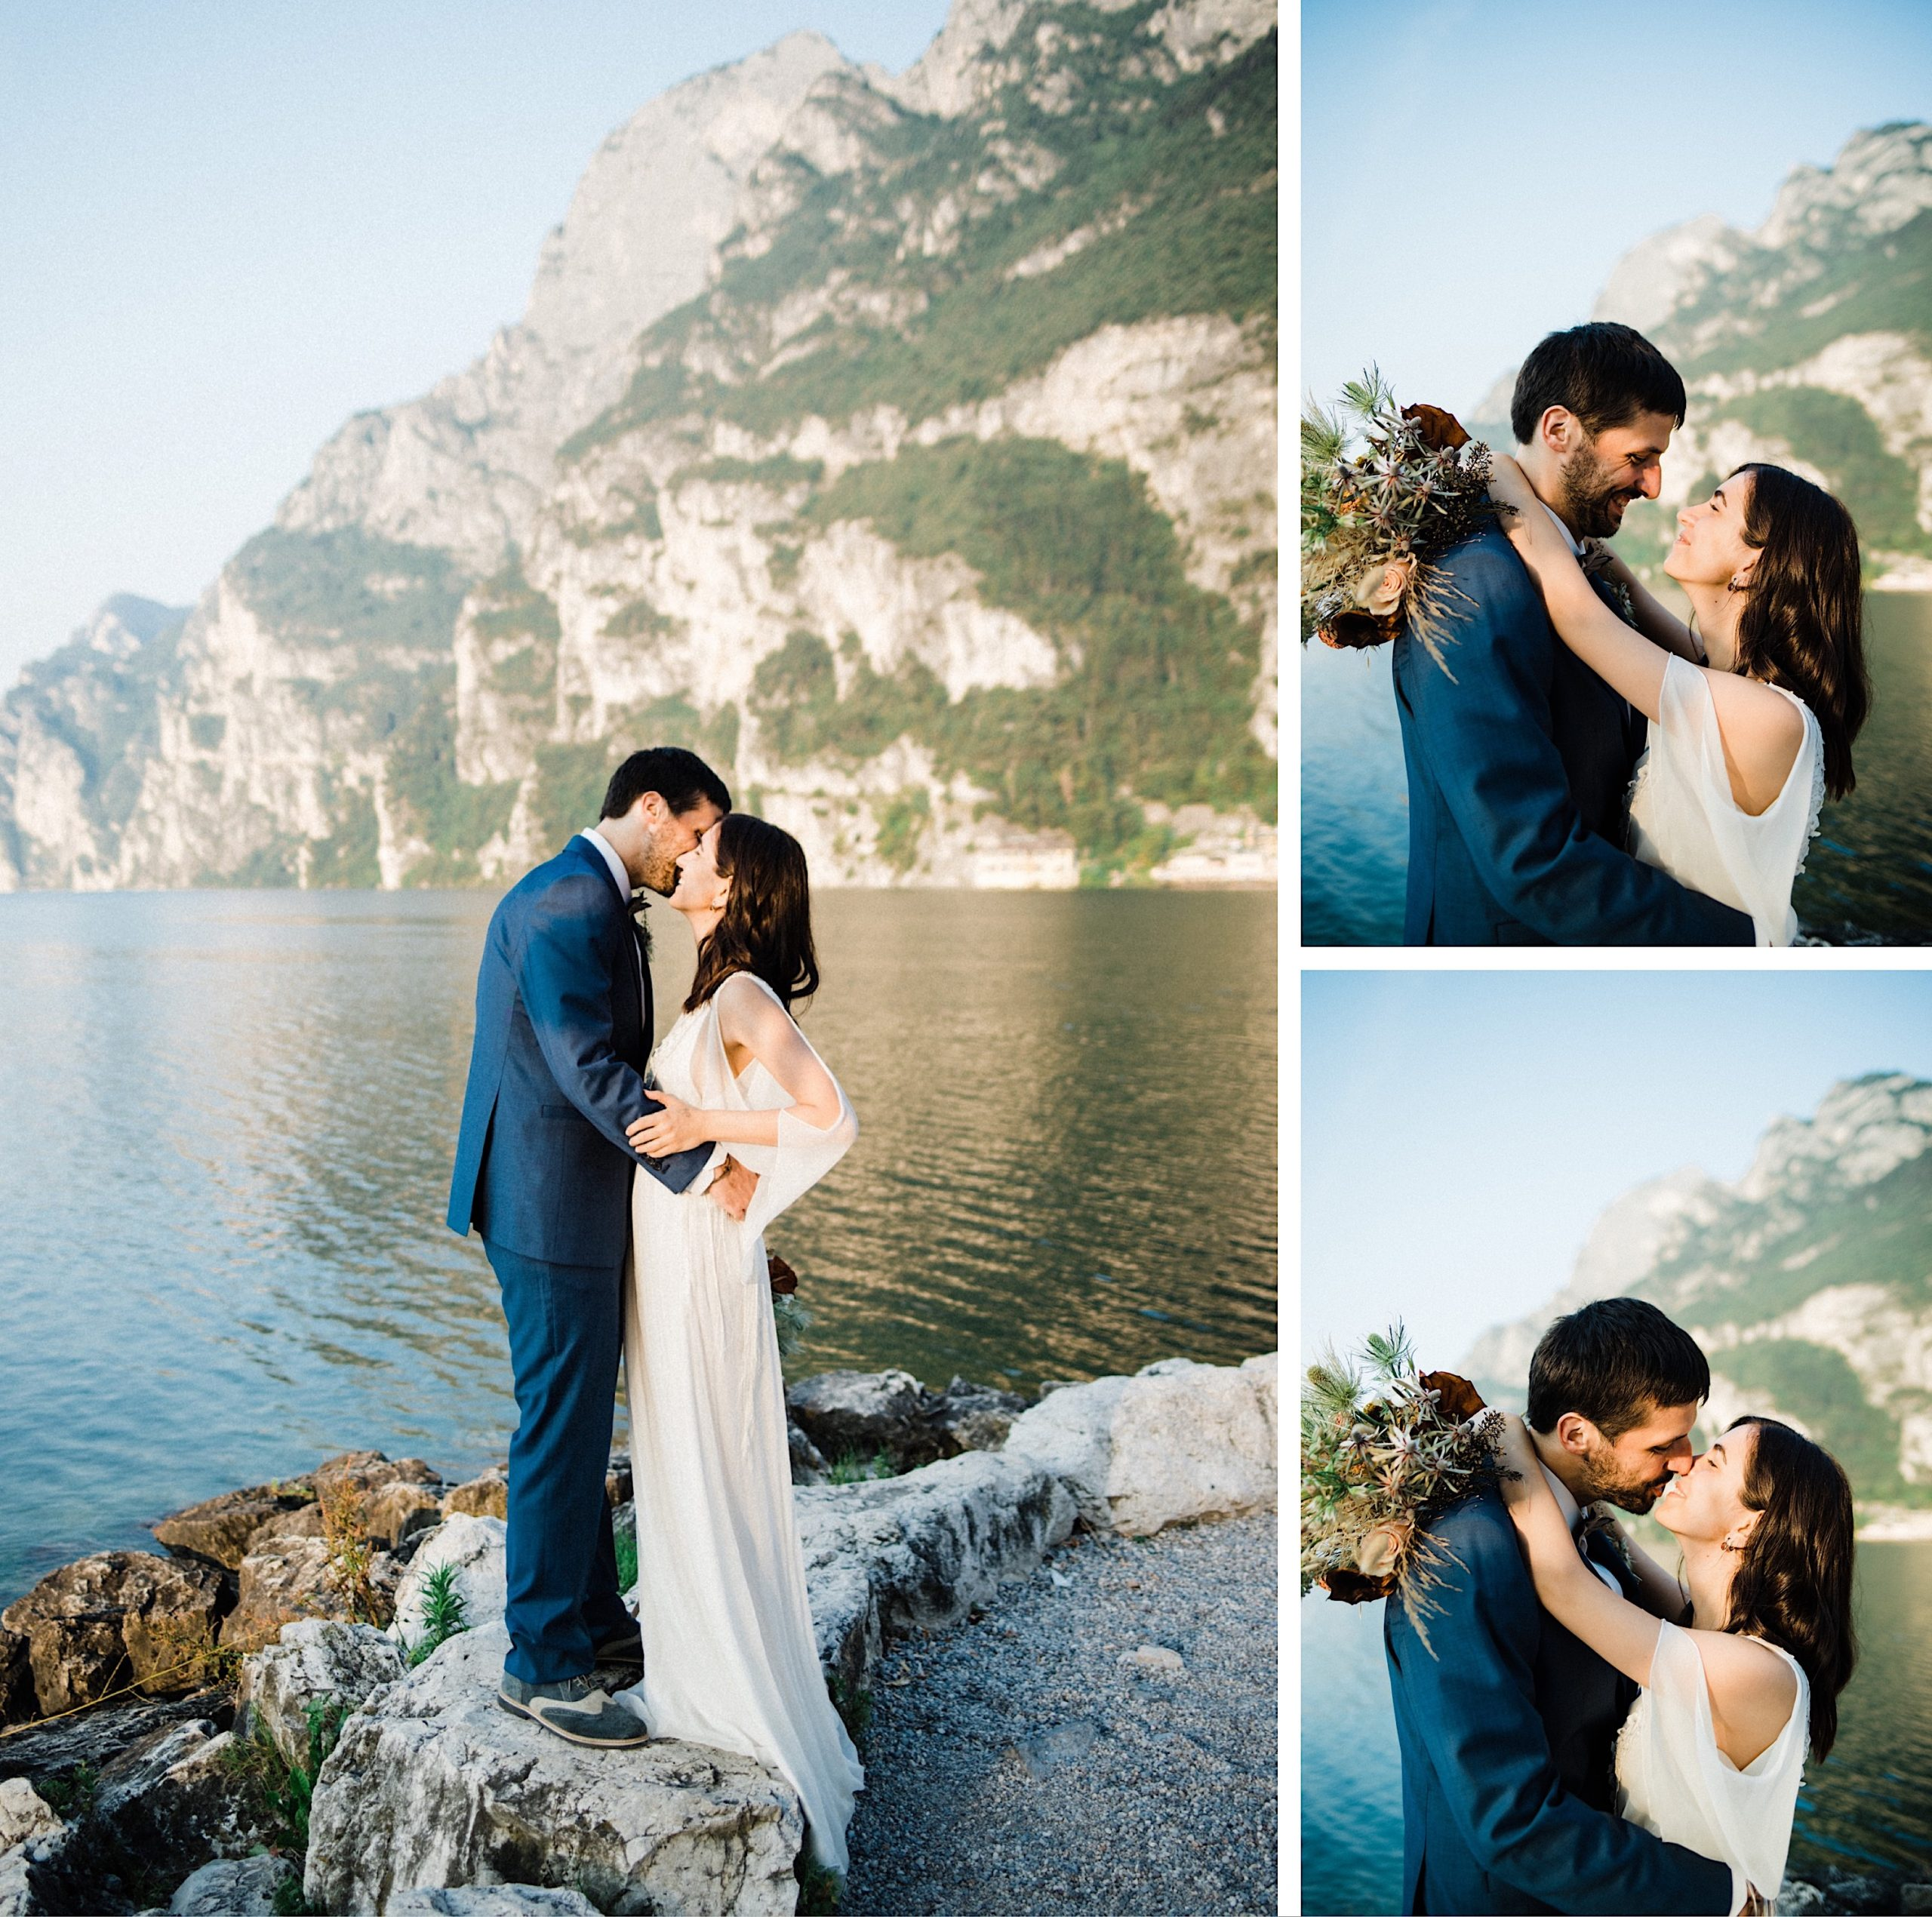 A set of three romantic, intimate photos from a Boho Summer Elopement in Italy. On the left, a wide portrait shot of the couple standing on rocks by the lake and kissing. On the right, two medium shots of the newly married couple sharing a kiss.